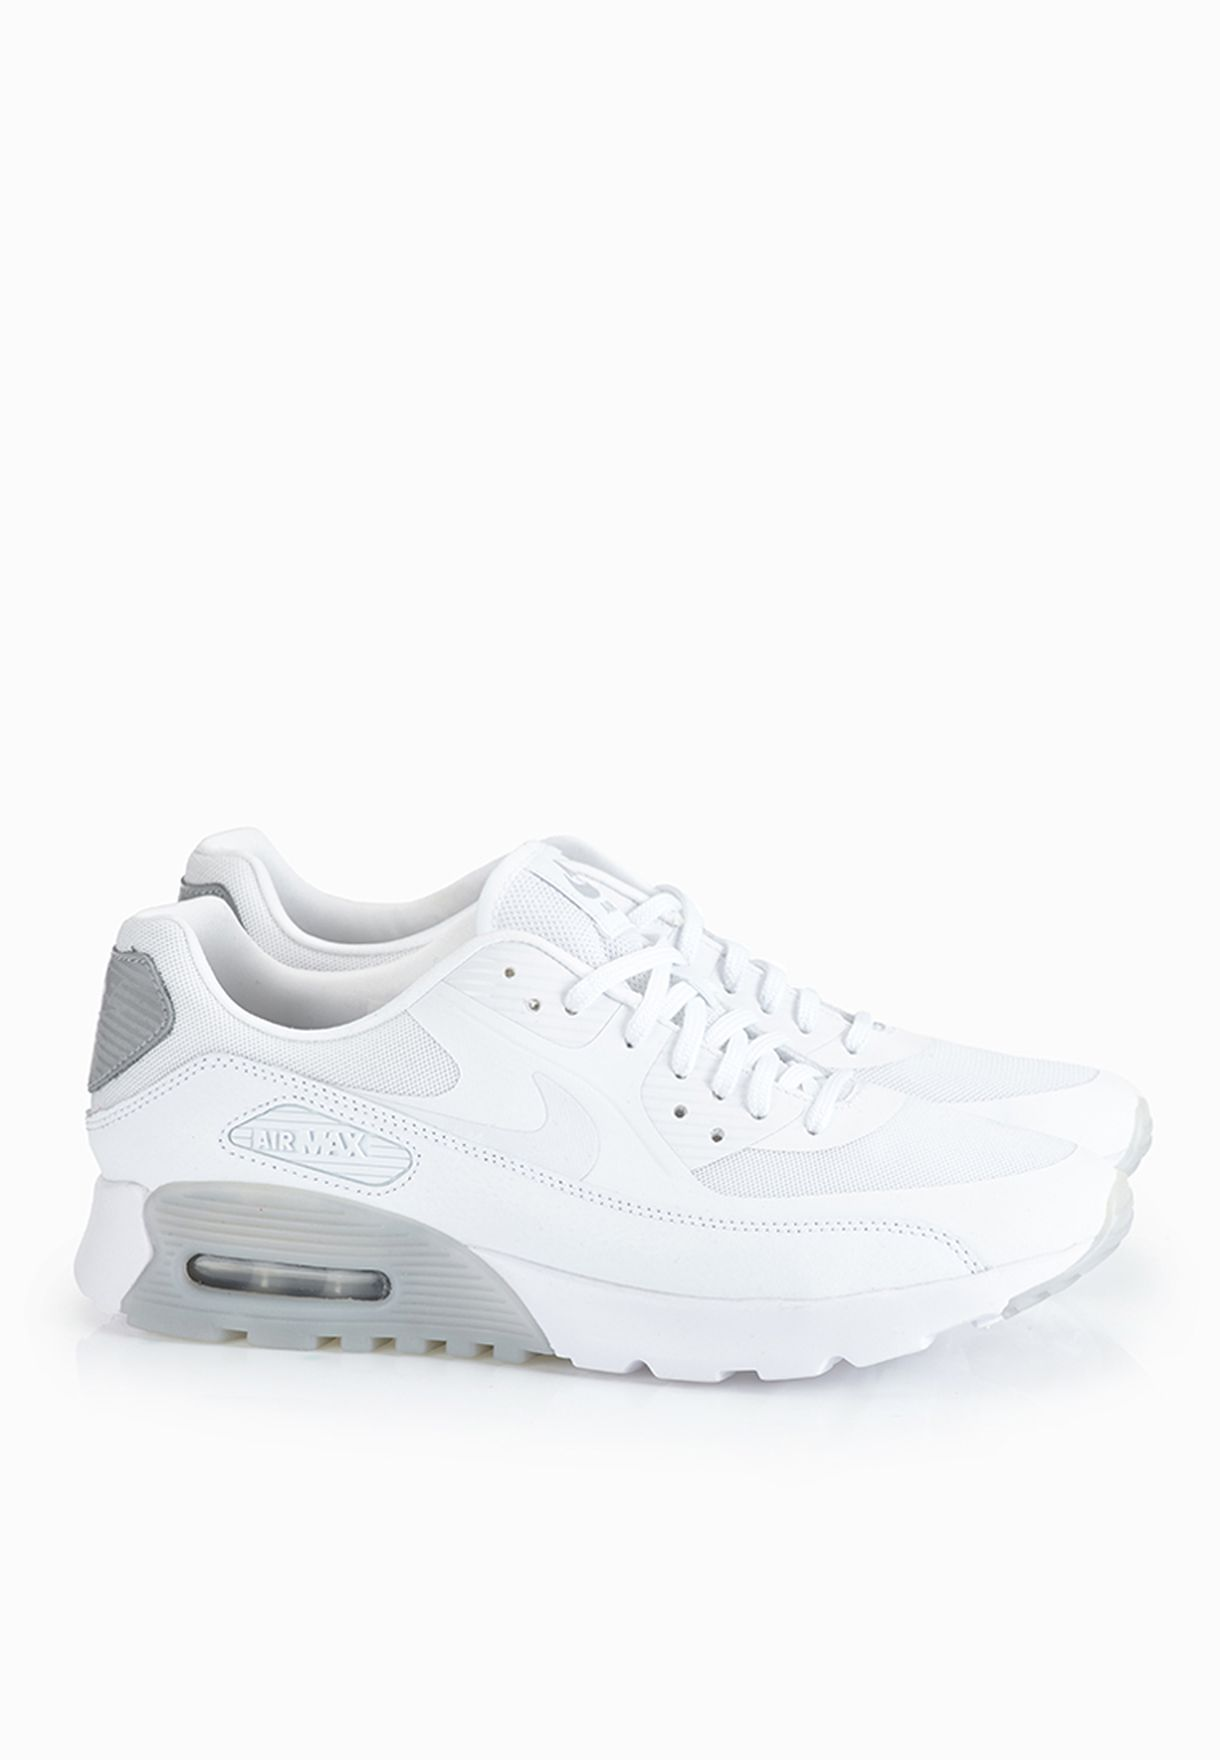 classic 3713f 5674a Air Max 90 Ultra Essential Sneakers